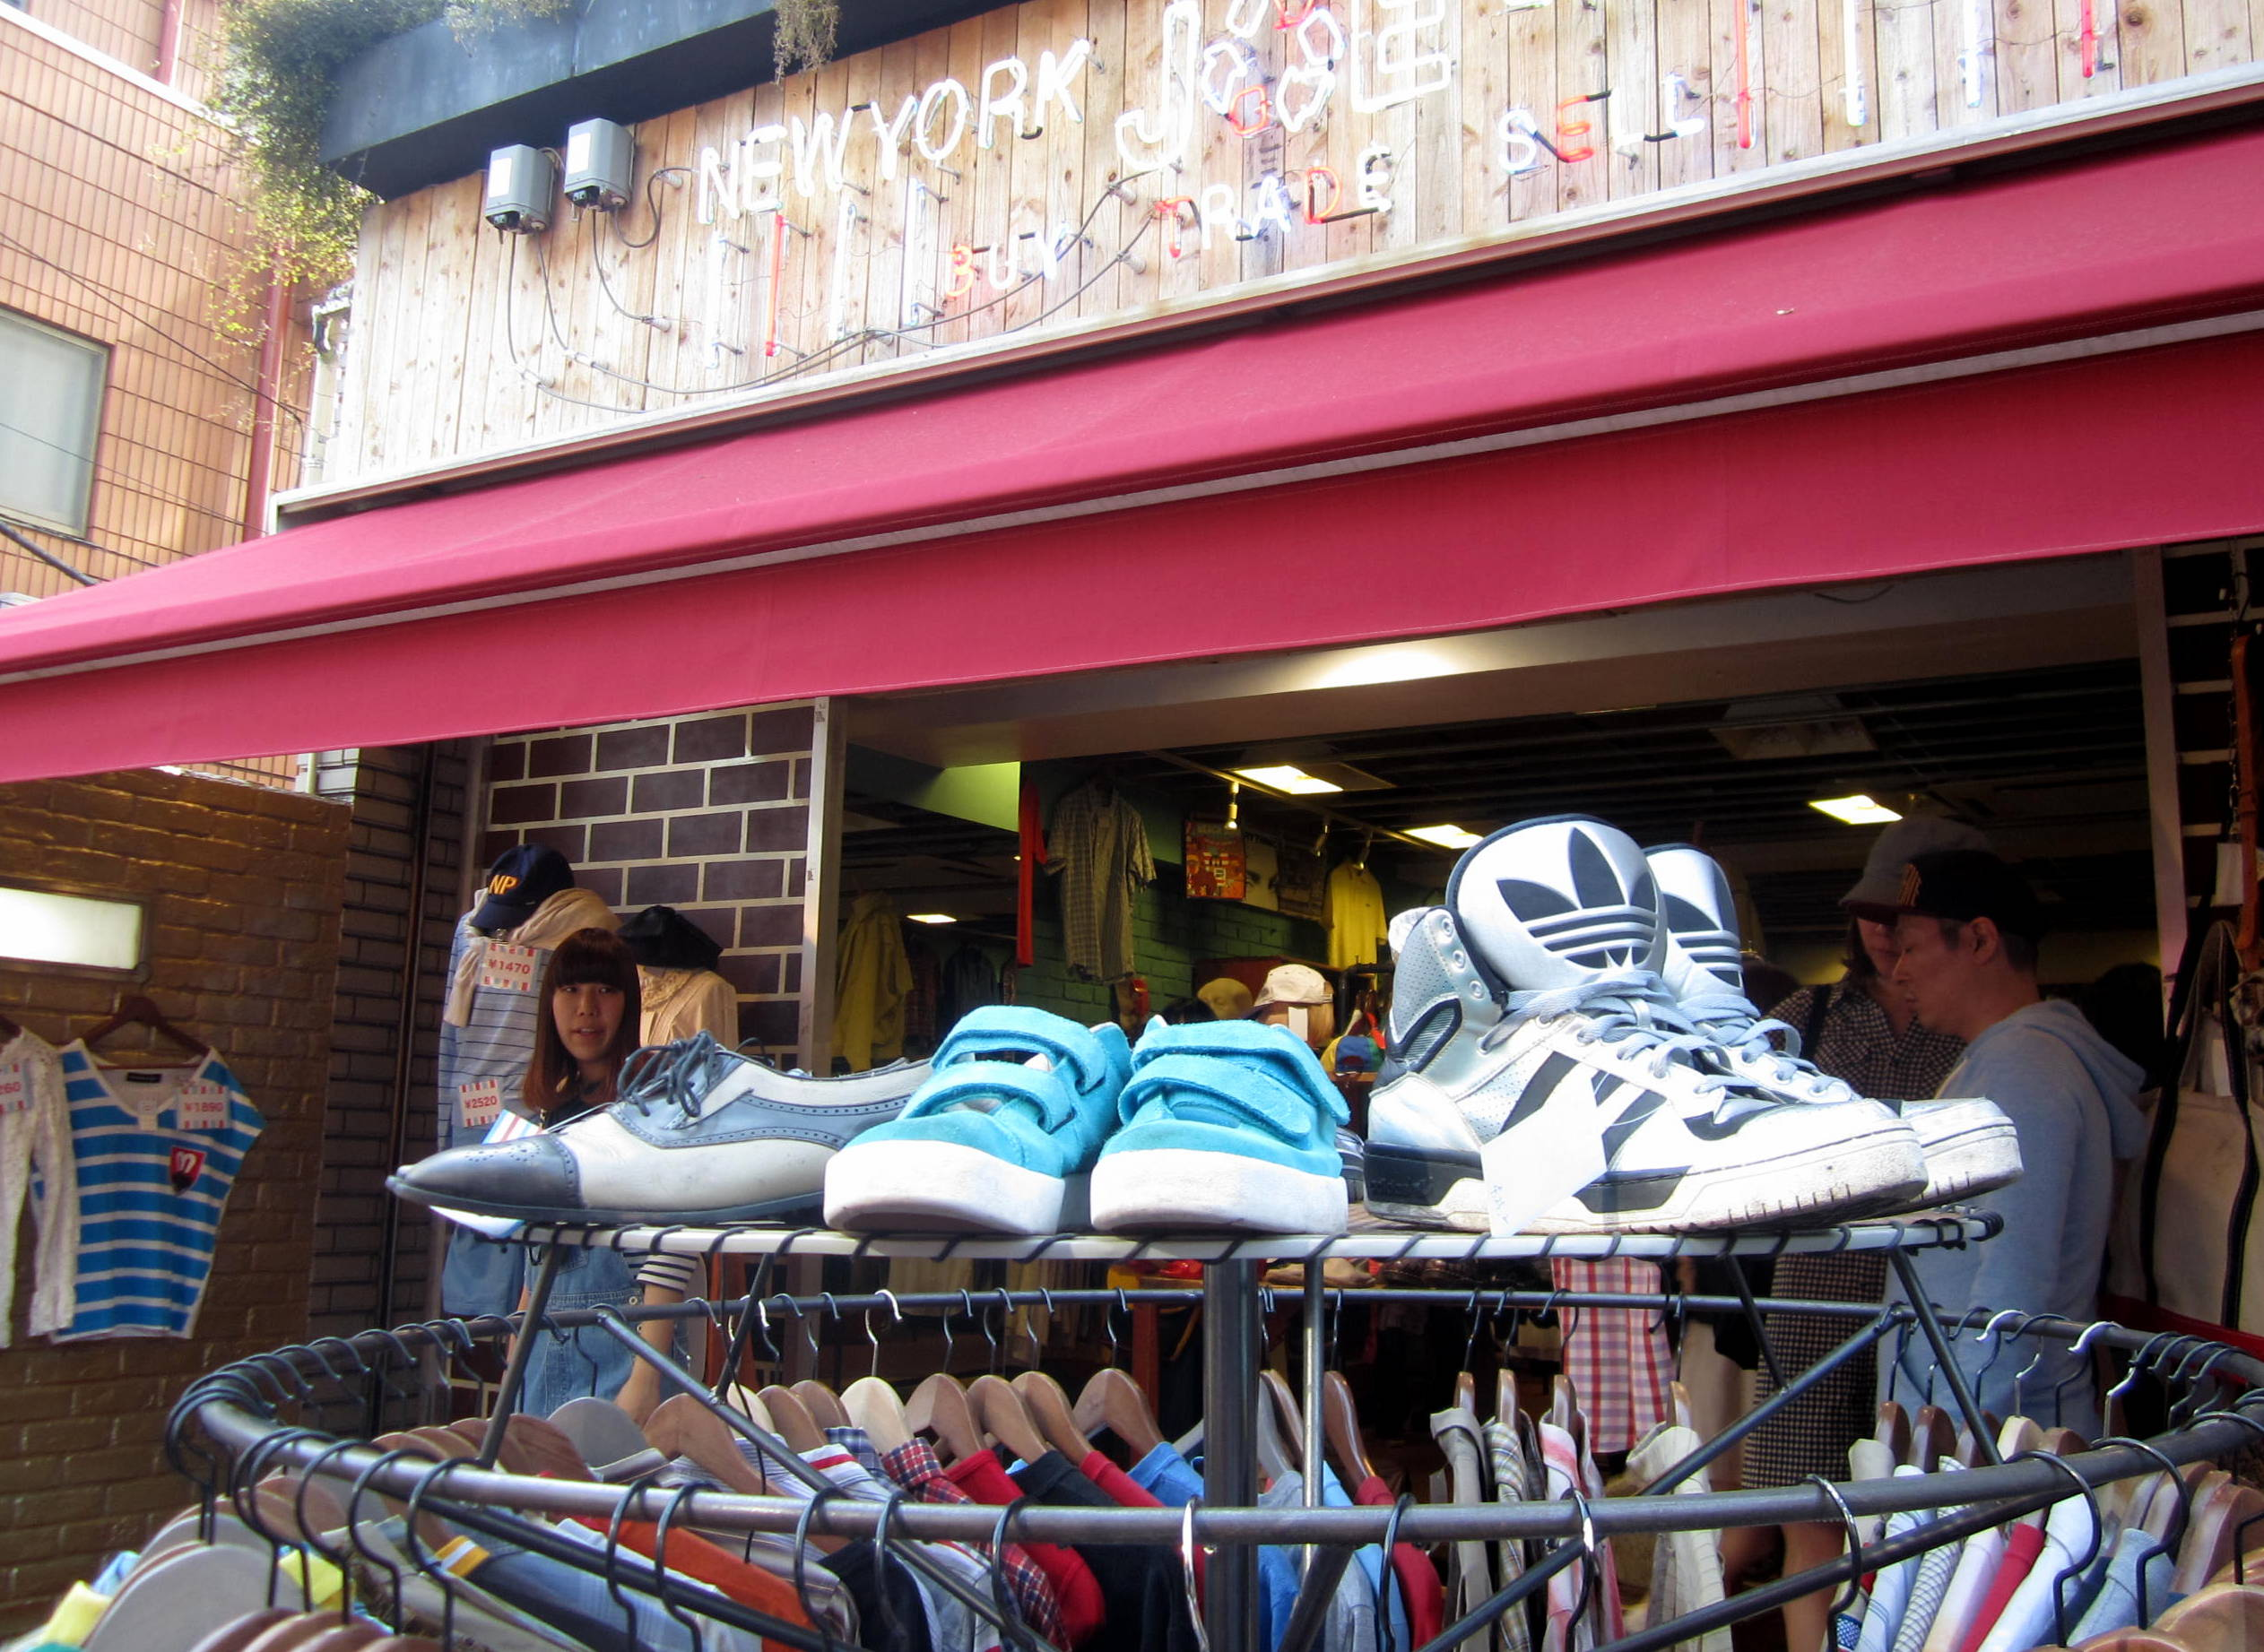 Urban clothing stores in philadelphia. Clothing stores online